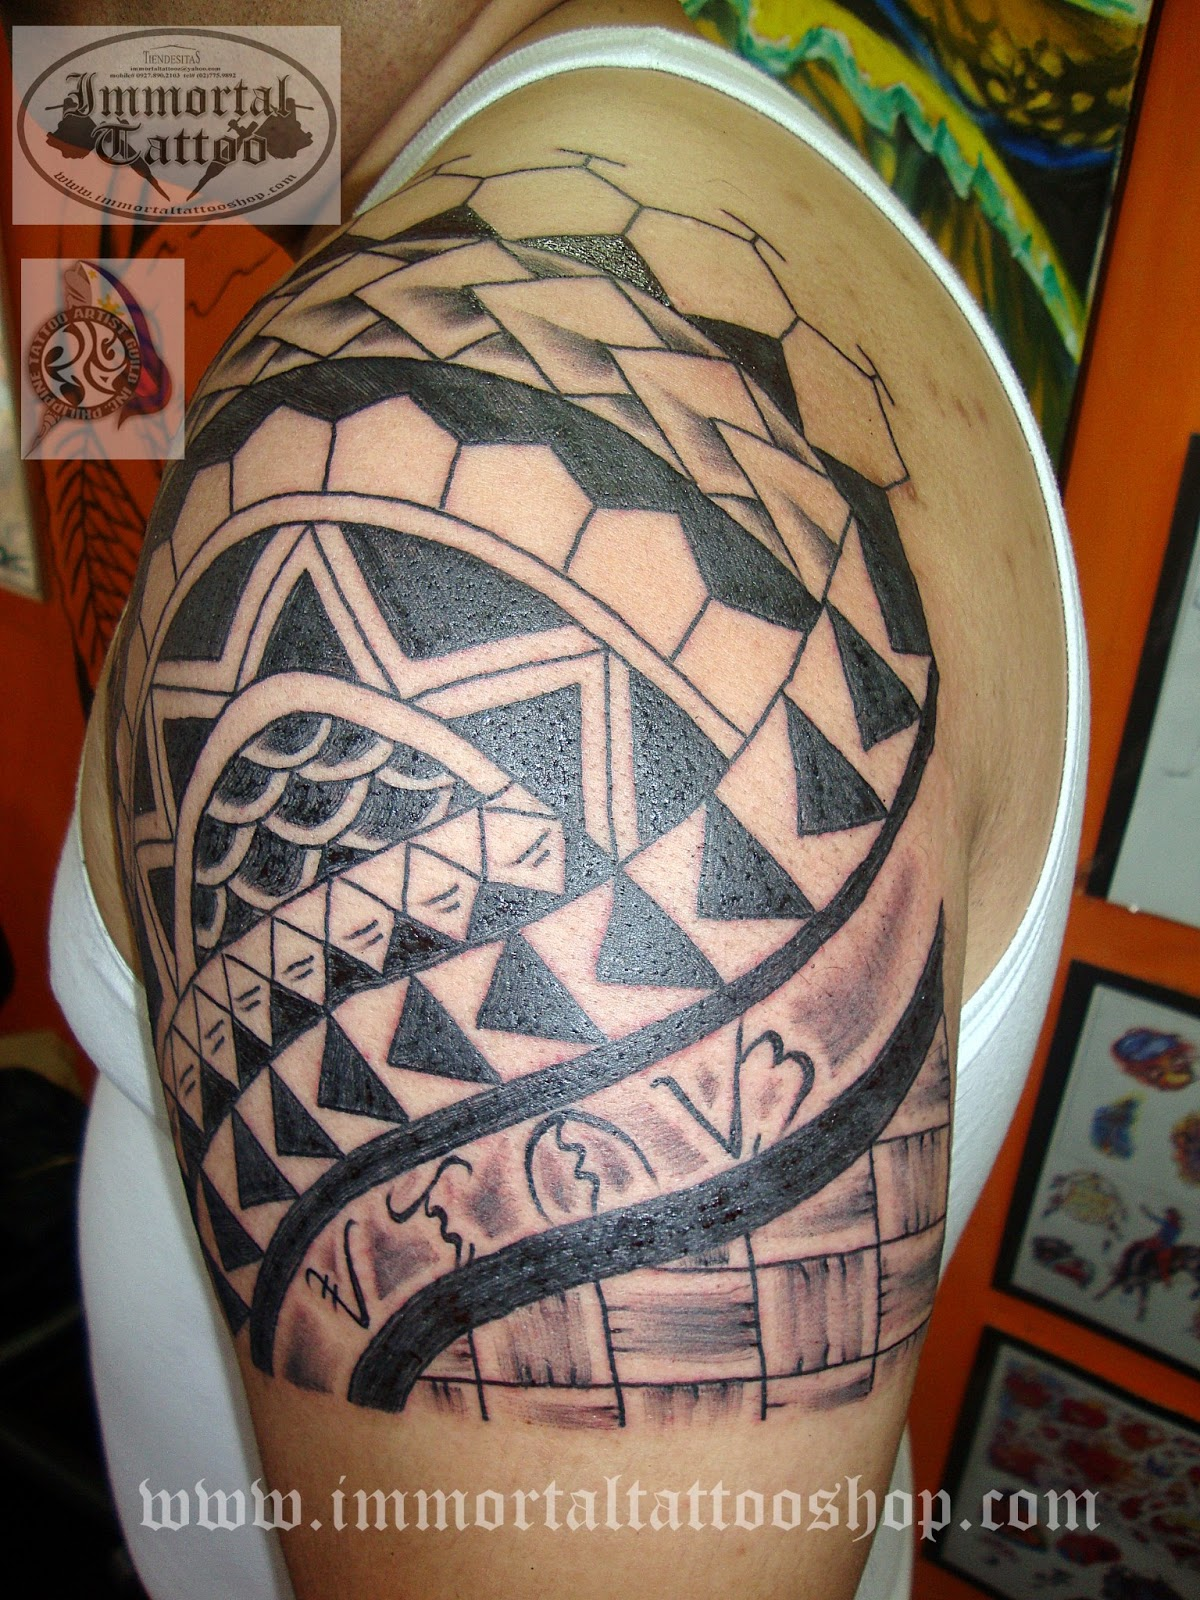 Immortal Tattoo Manila Philippines By Frank Ibanez Jr Ideas And Designs